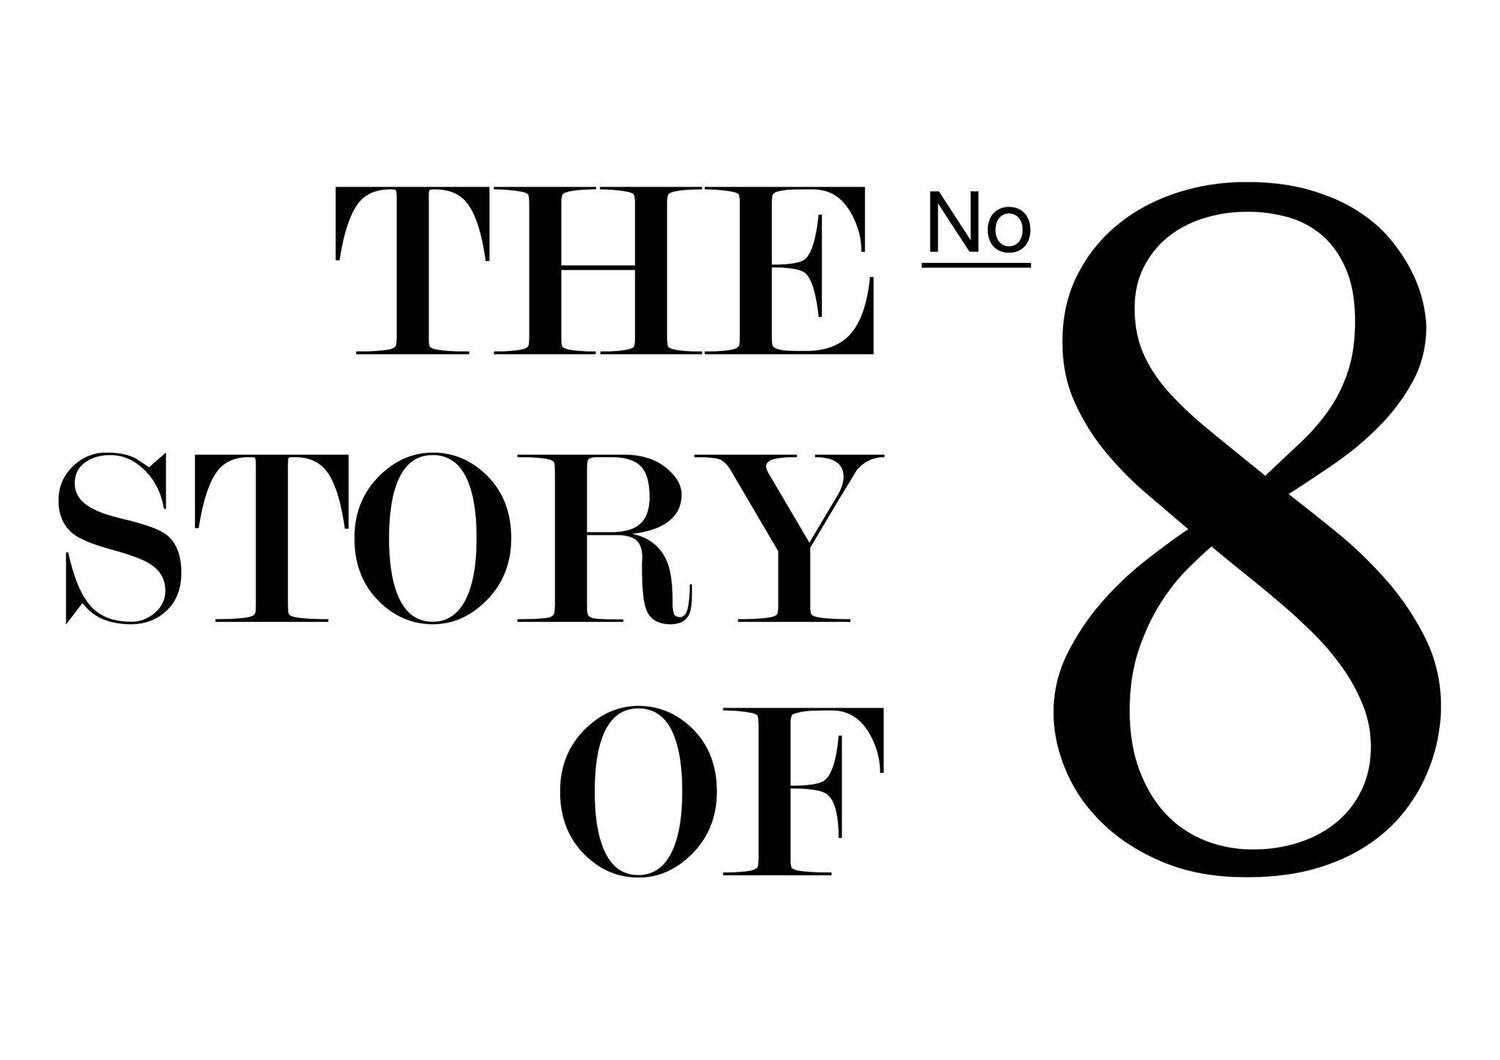 The Story Of No 8